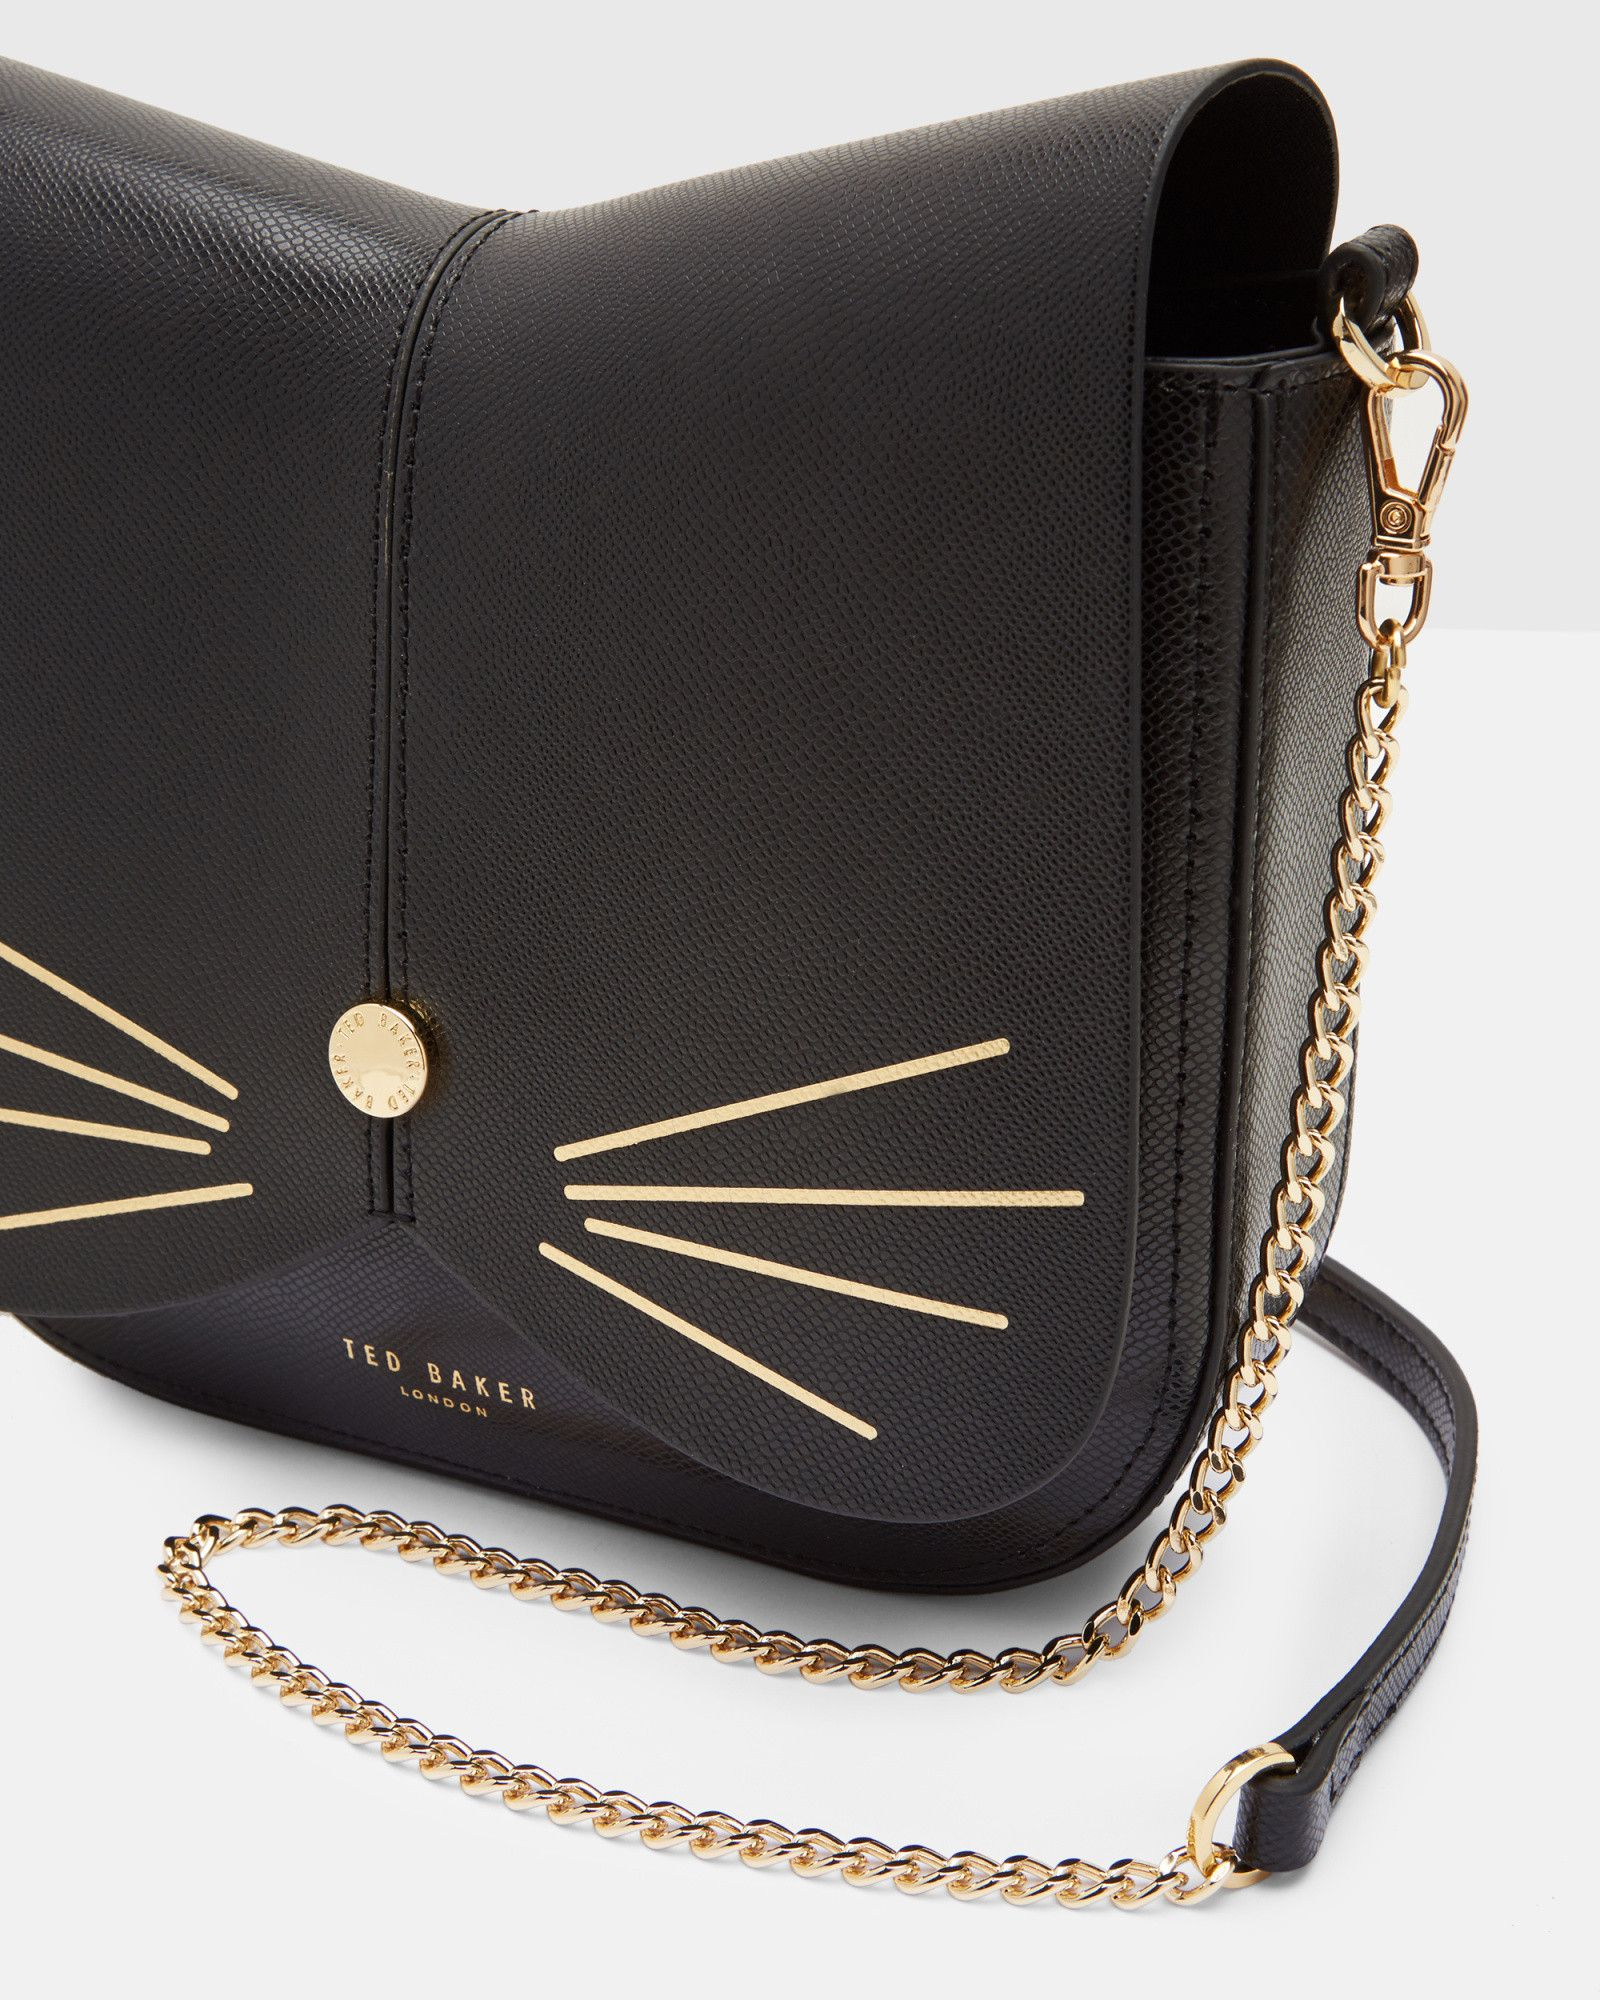 cat leather cross body bag  black  bags  ted baker uk  - cat leather cross body bag  black  bags  ted baker uk